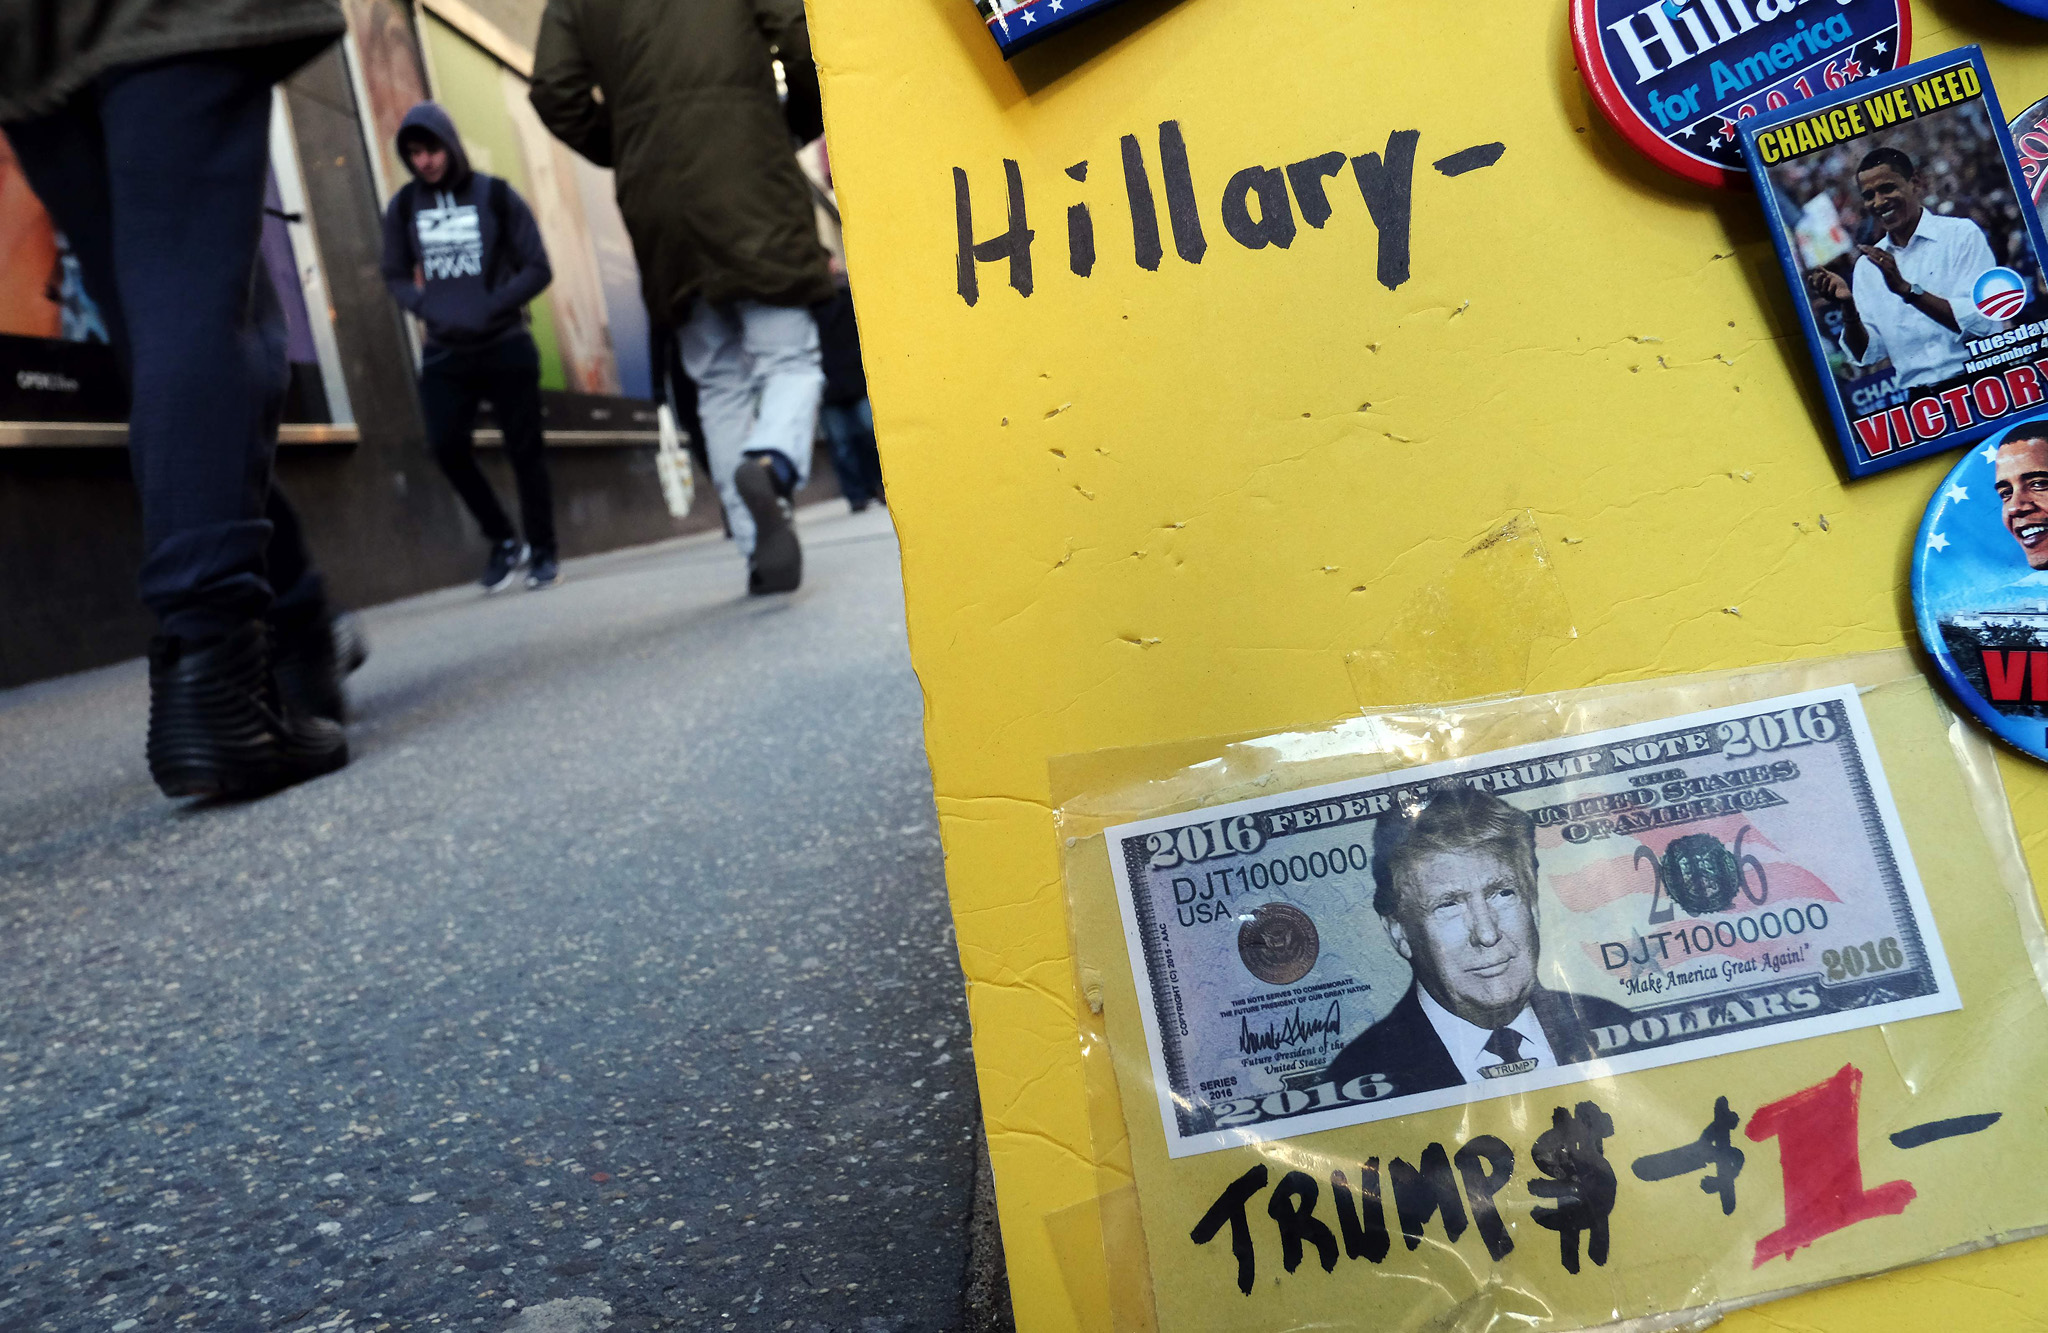 A fake dollar bill with US Republican pr...A fake dollar bill with US Republican presidential candidate Donald Trump's picture on it is displayed for sale with other electoral items at a roadside stall as pedestrians walk past in New York on February 26, 2016. White House hopefuls Ted Cruz and Marco Rubio unleashed a barrage of attacks against Donald Trump during raucous Republican debate on February 25, as they sought to halt the billionaire frontrunner's seemingly relentless march to the party's nomination. / AFP / Jewel SamadJEWEL SAMAD/AFP/Getty Images